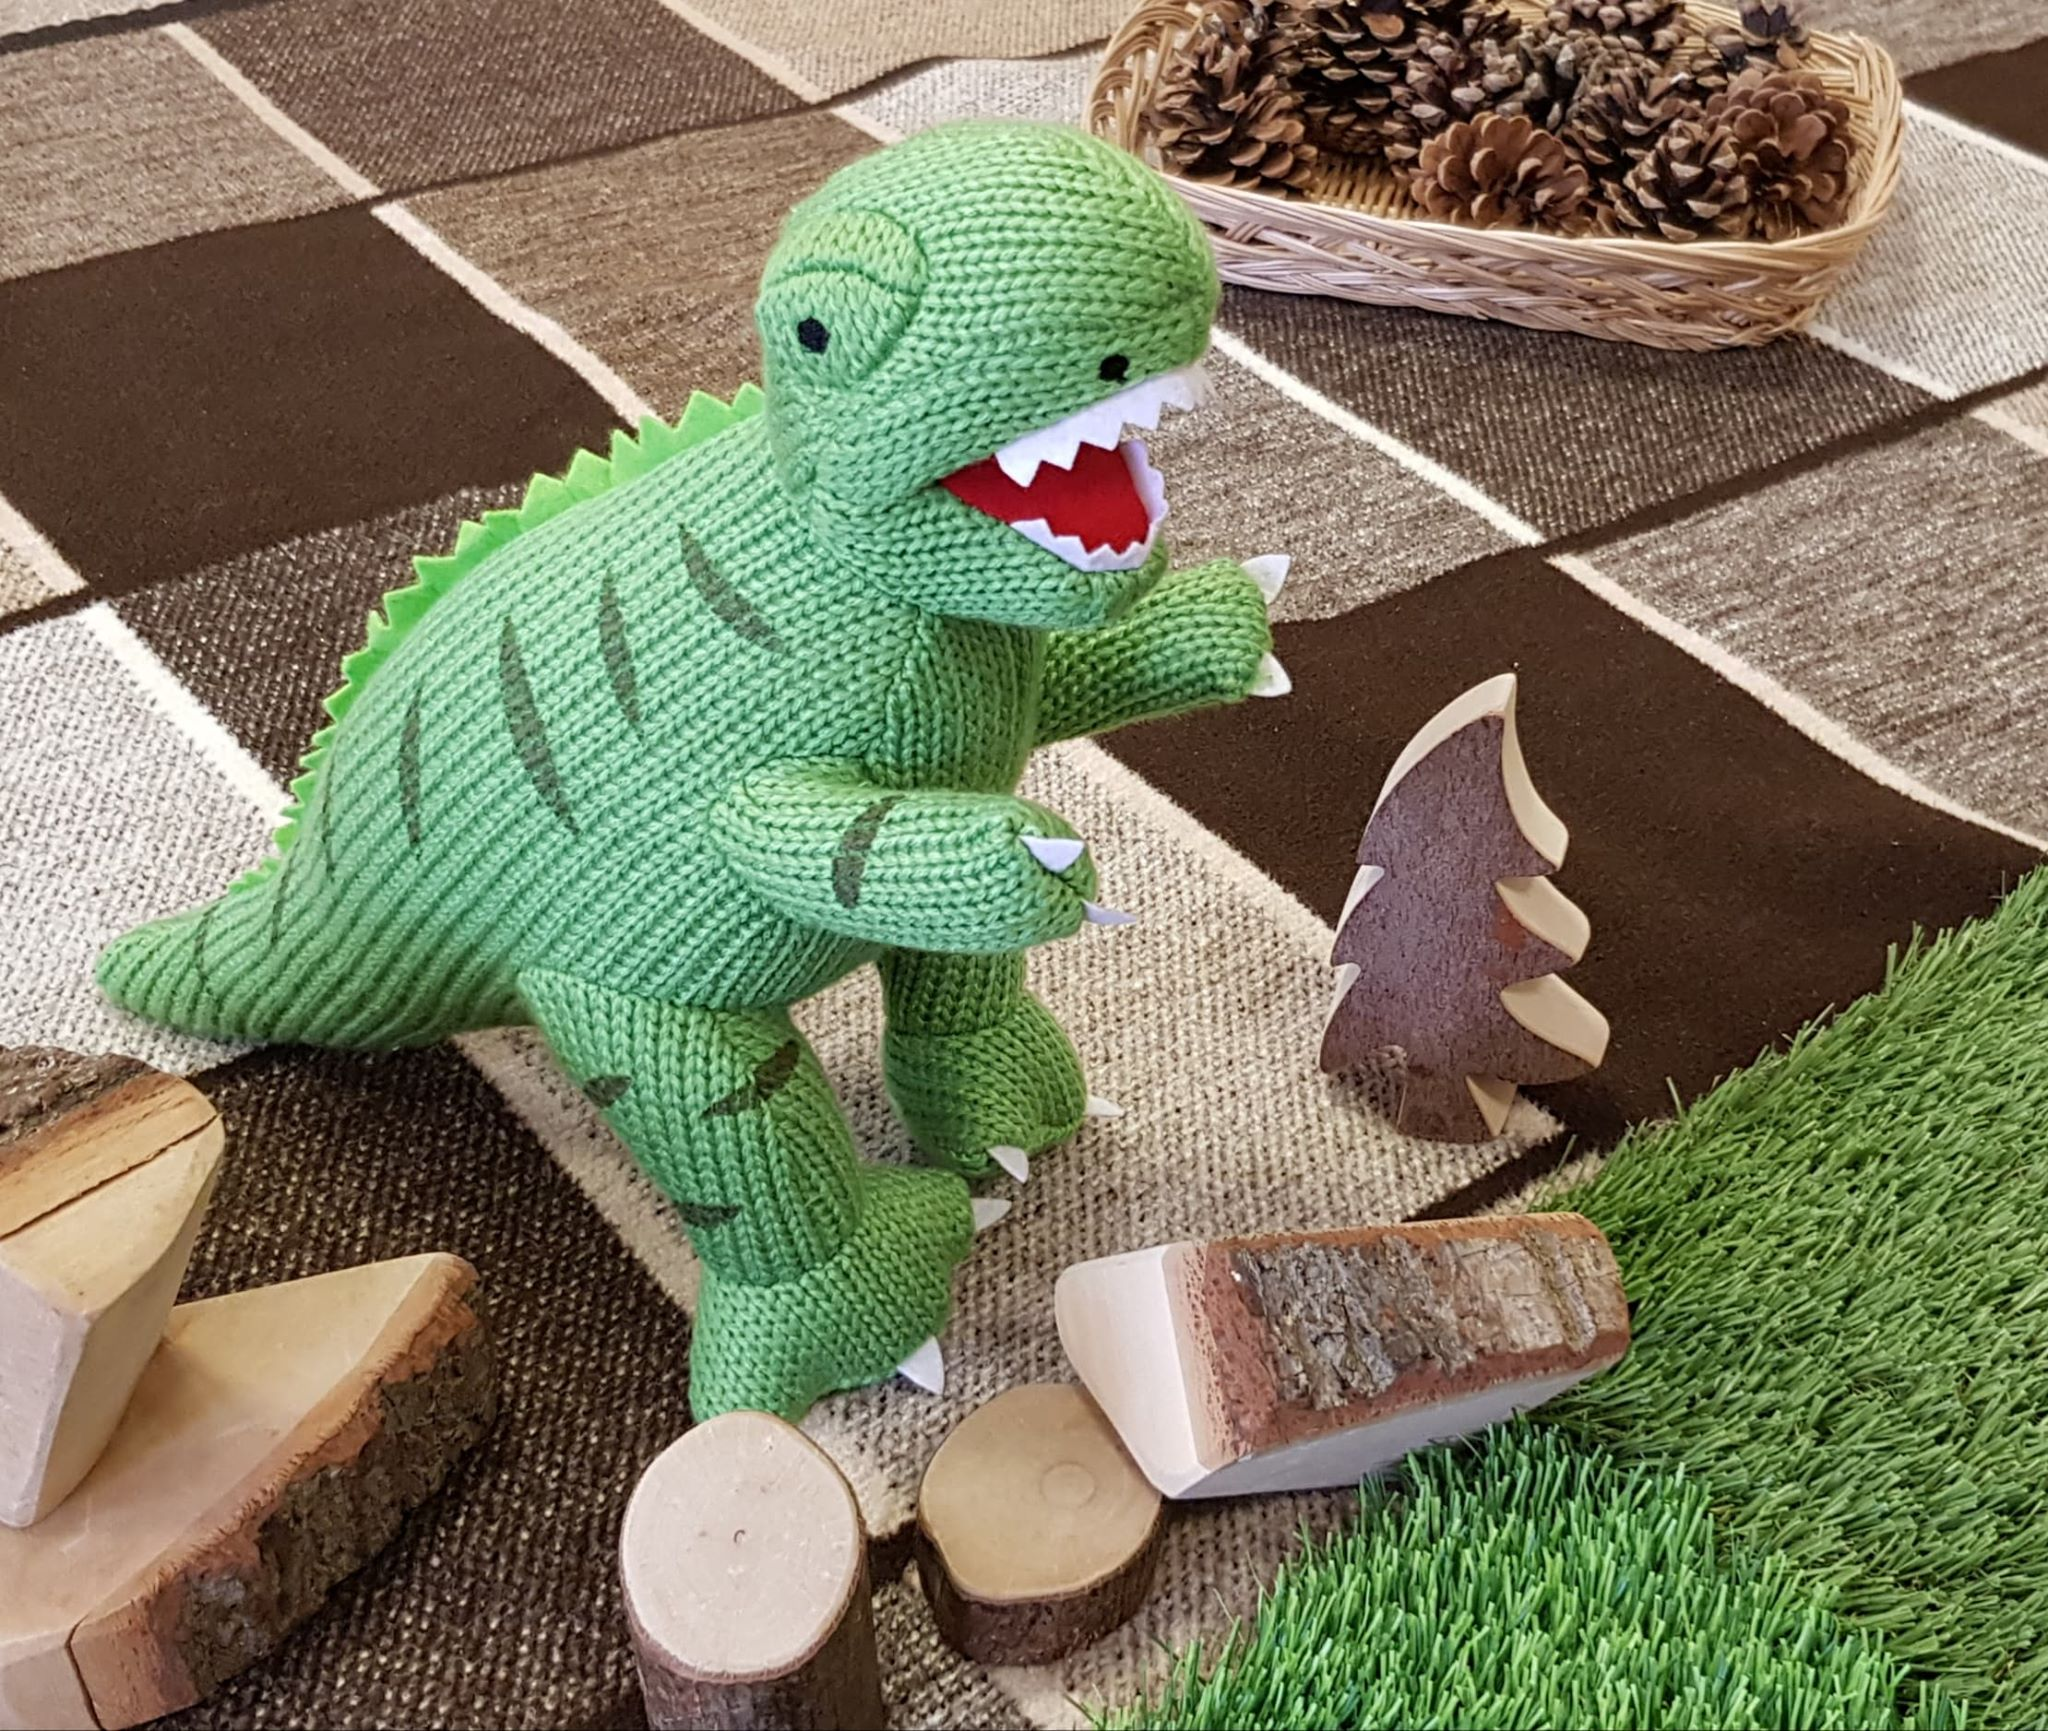 T Rex Harry in his new home